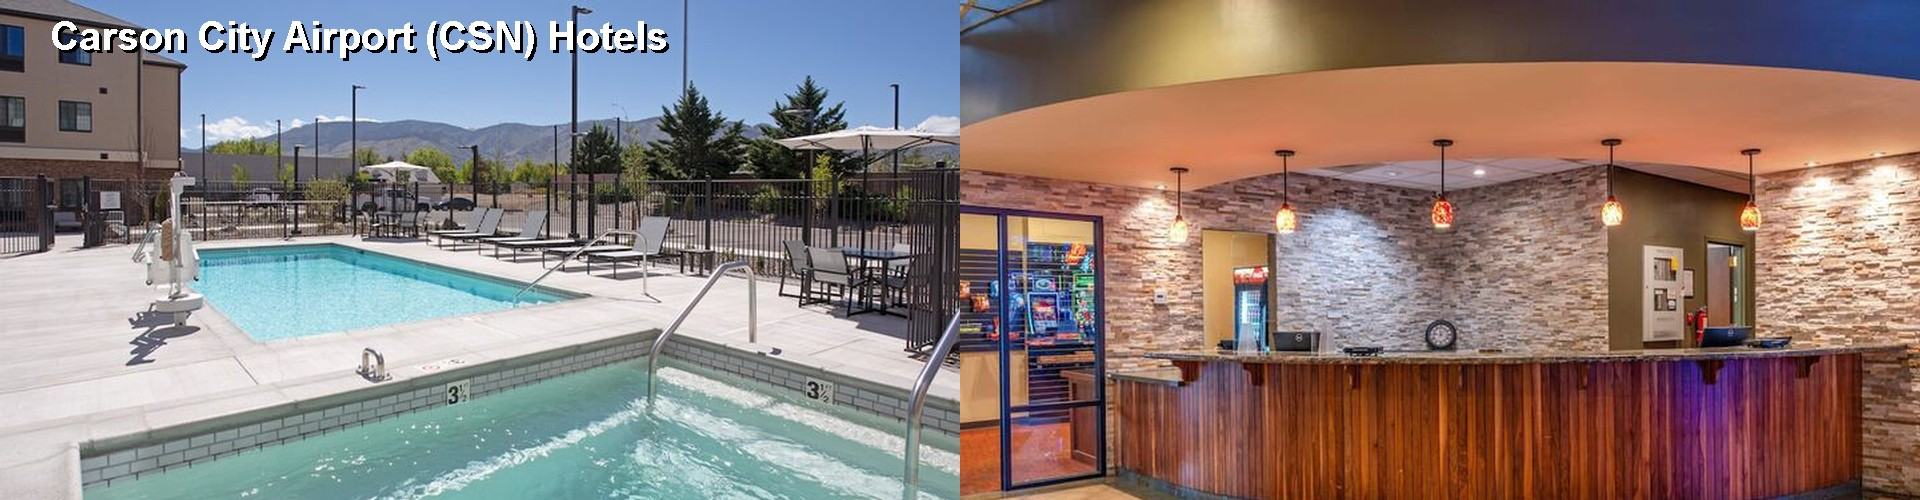 5 Best Hotels near Carson City Airport (CSN)